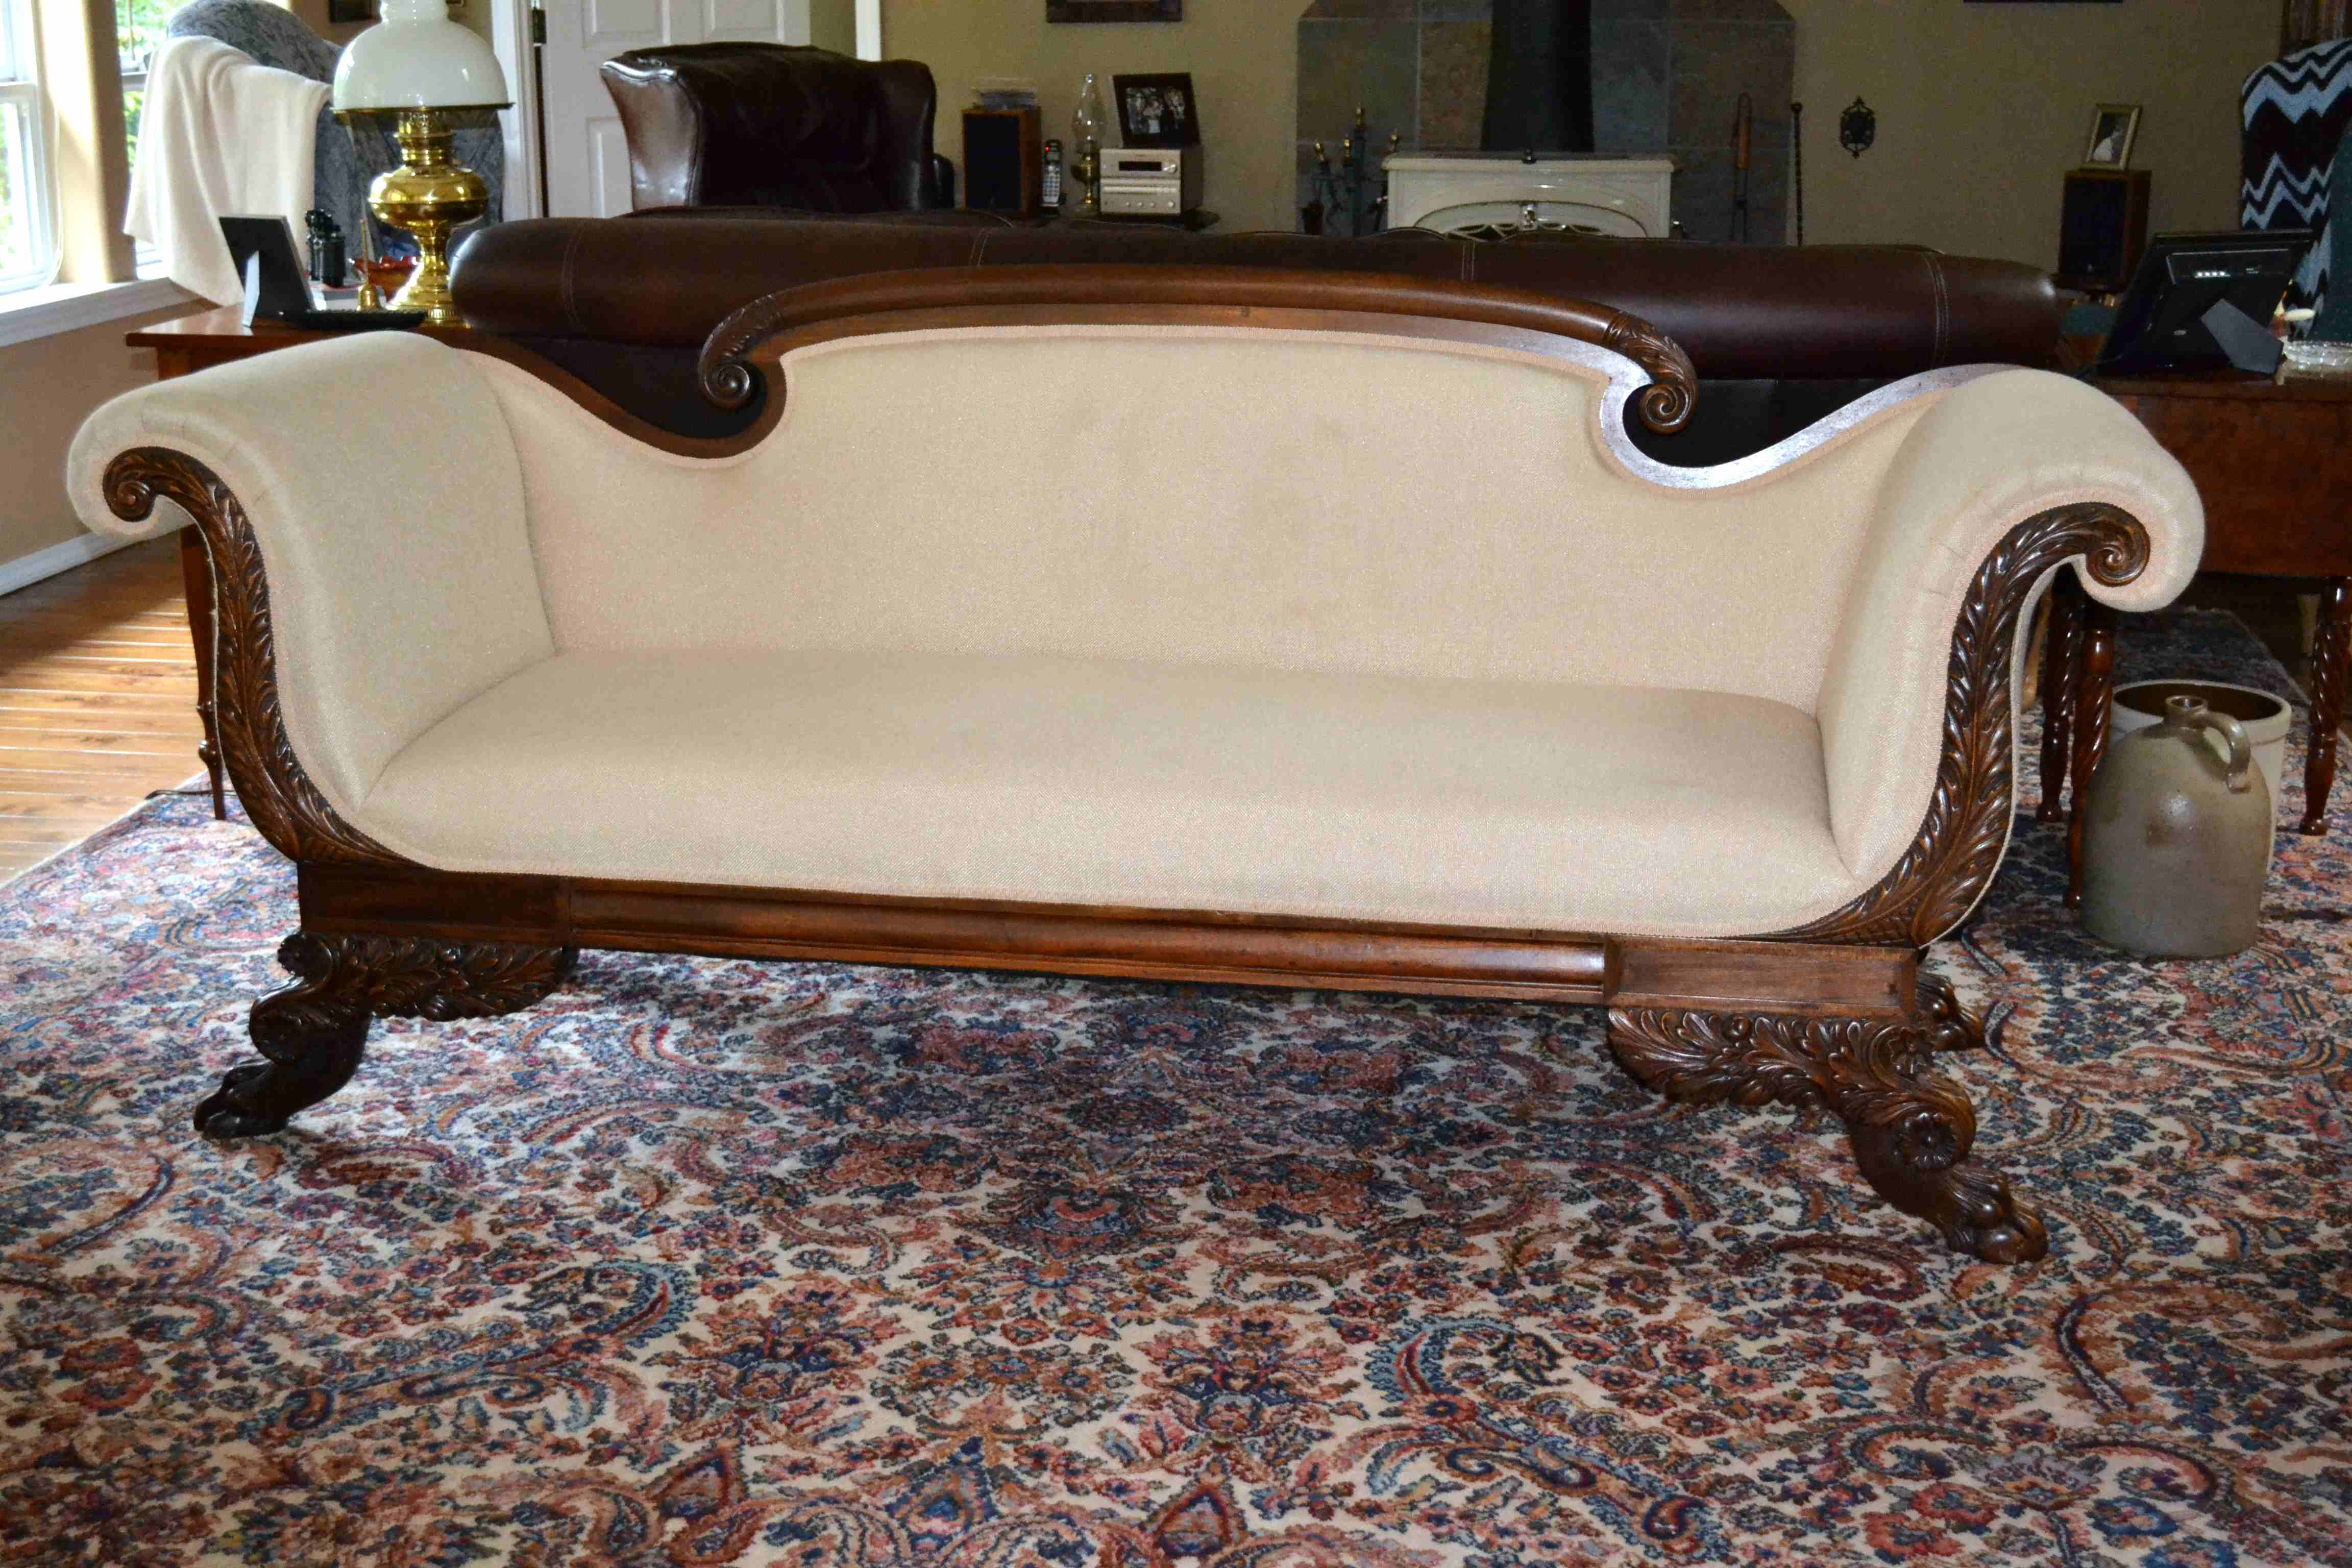 living brown ideas antique for arm chesterfield with sofa rolled couch couches elegant room luxury tufted furniture of